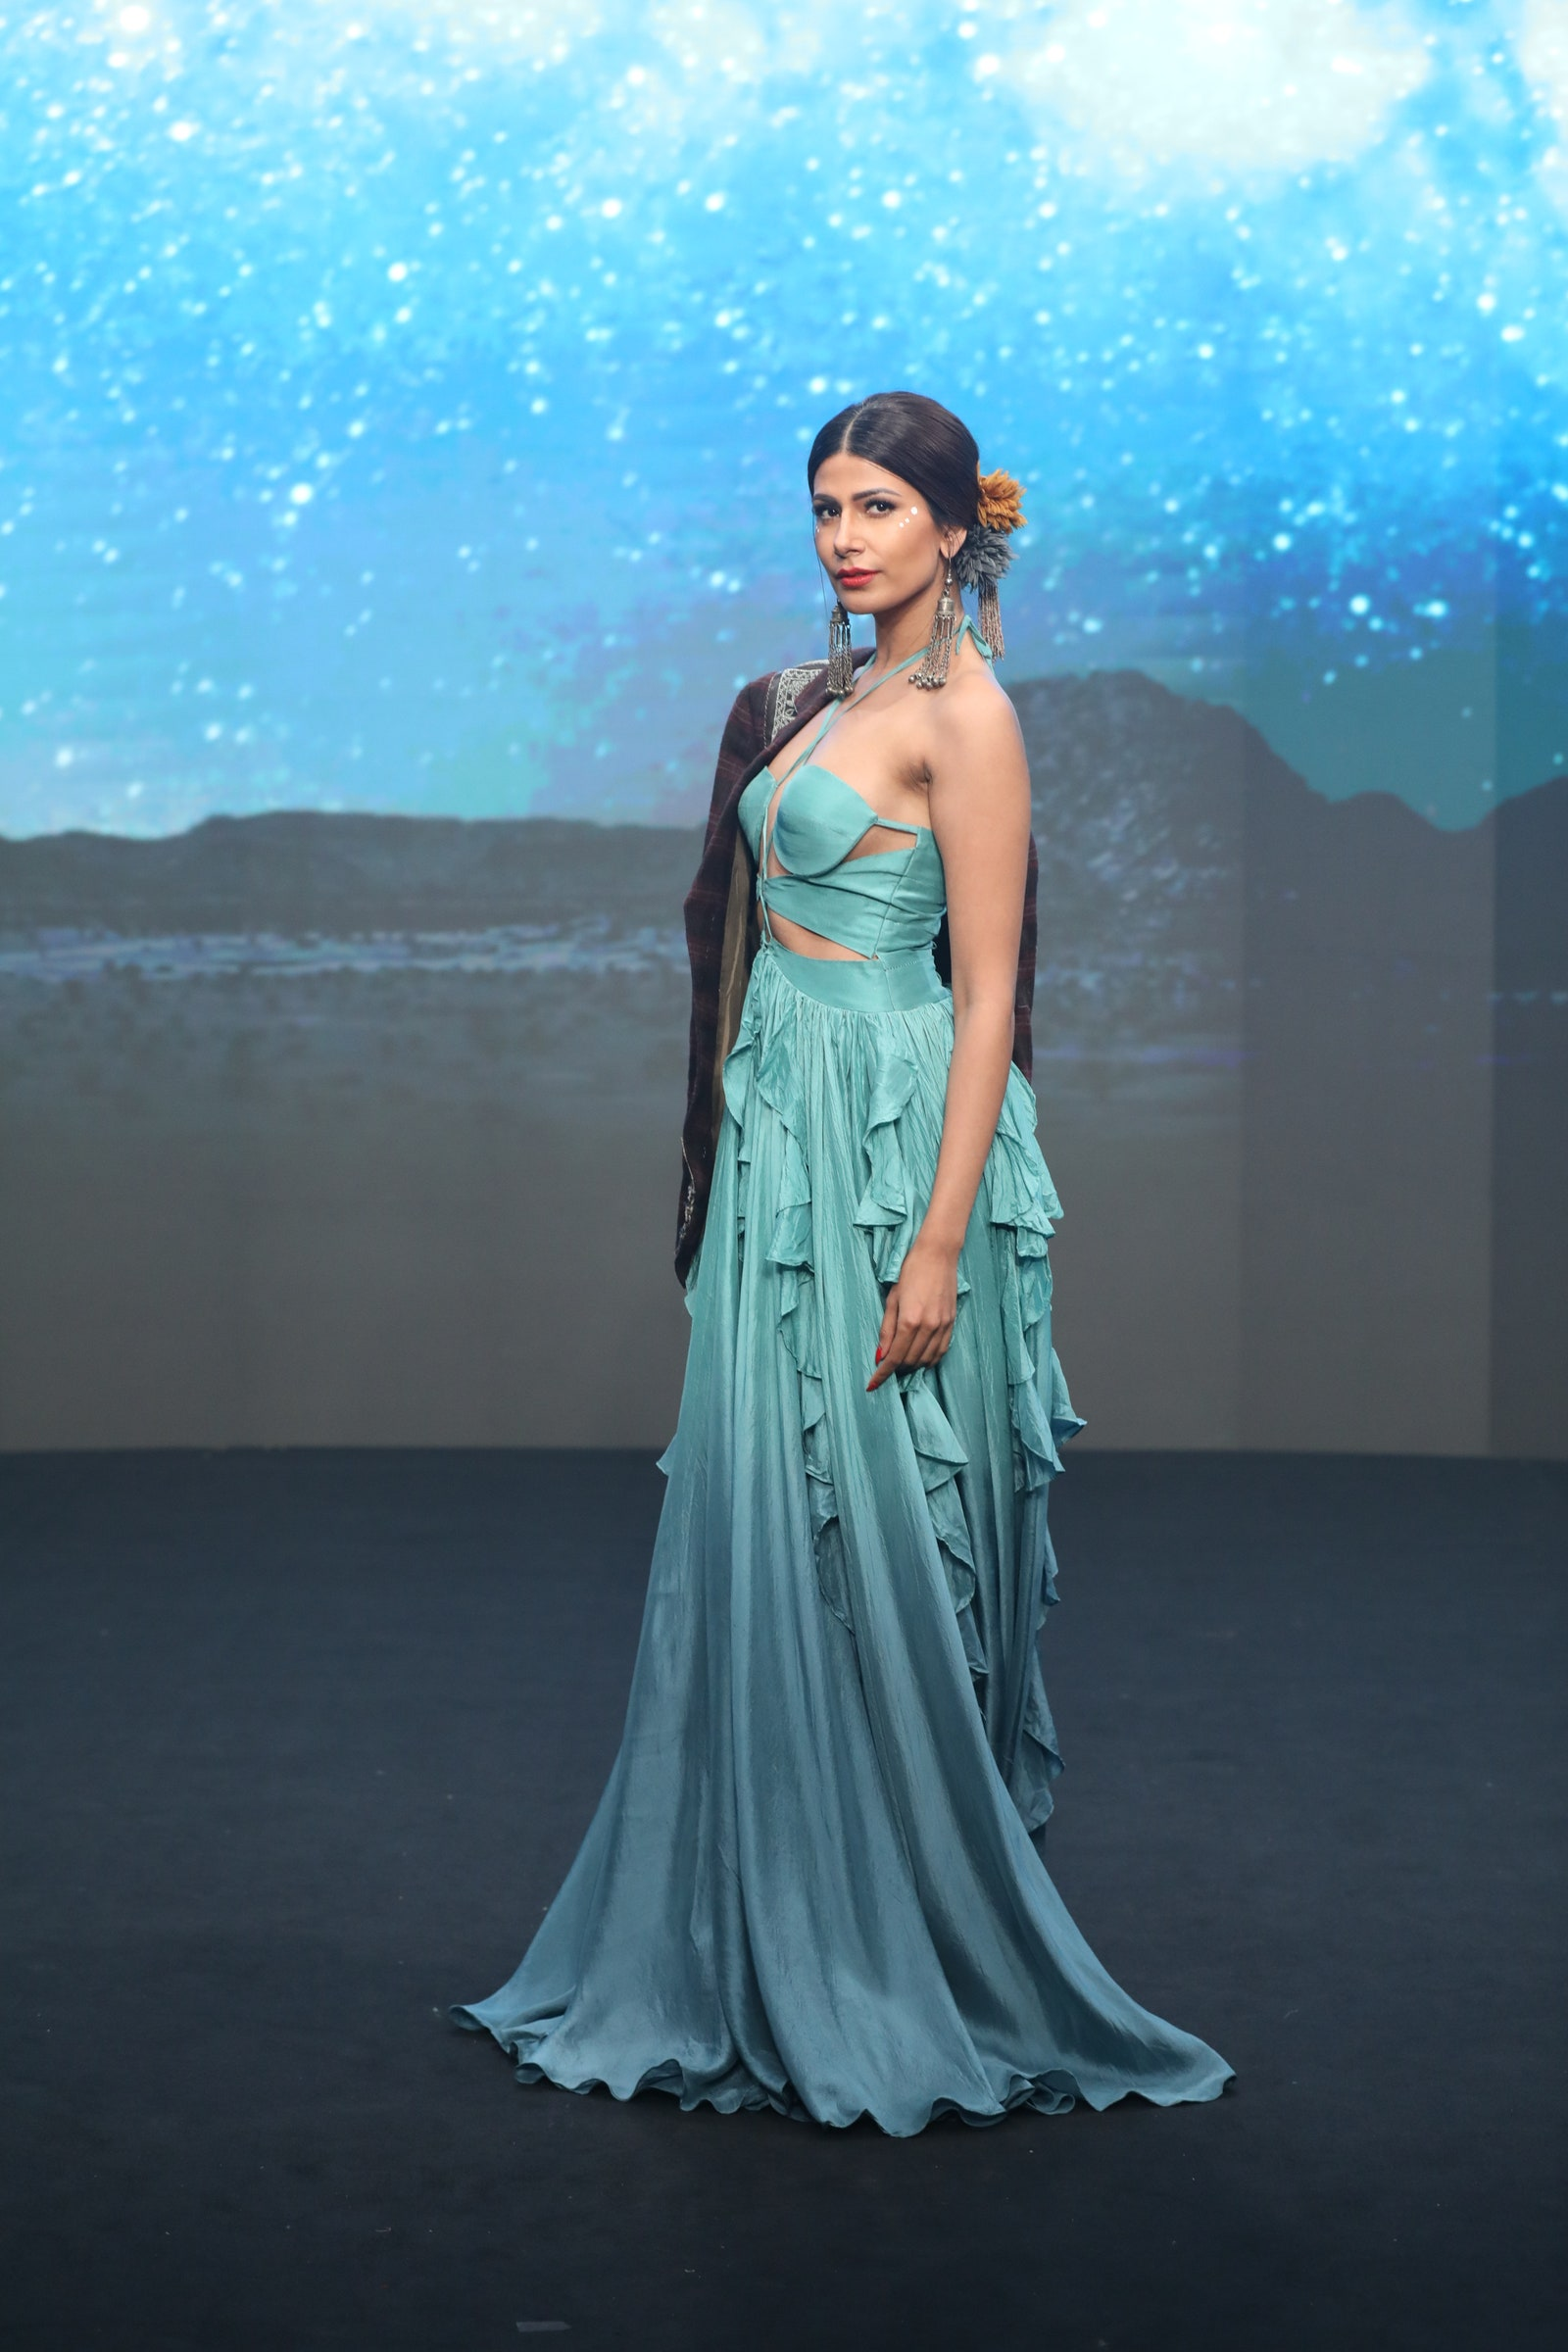 A lady wearing a floor-length turquoise gown.